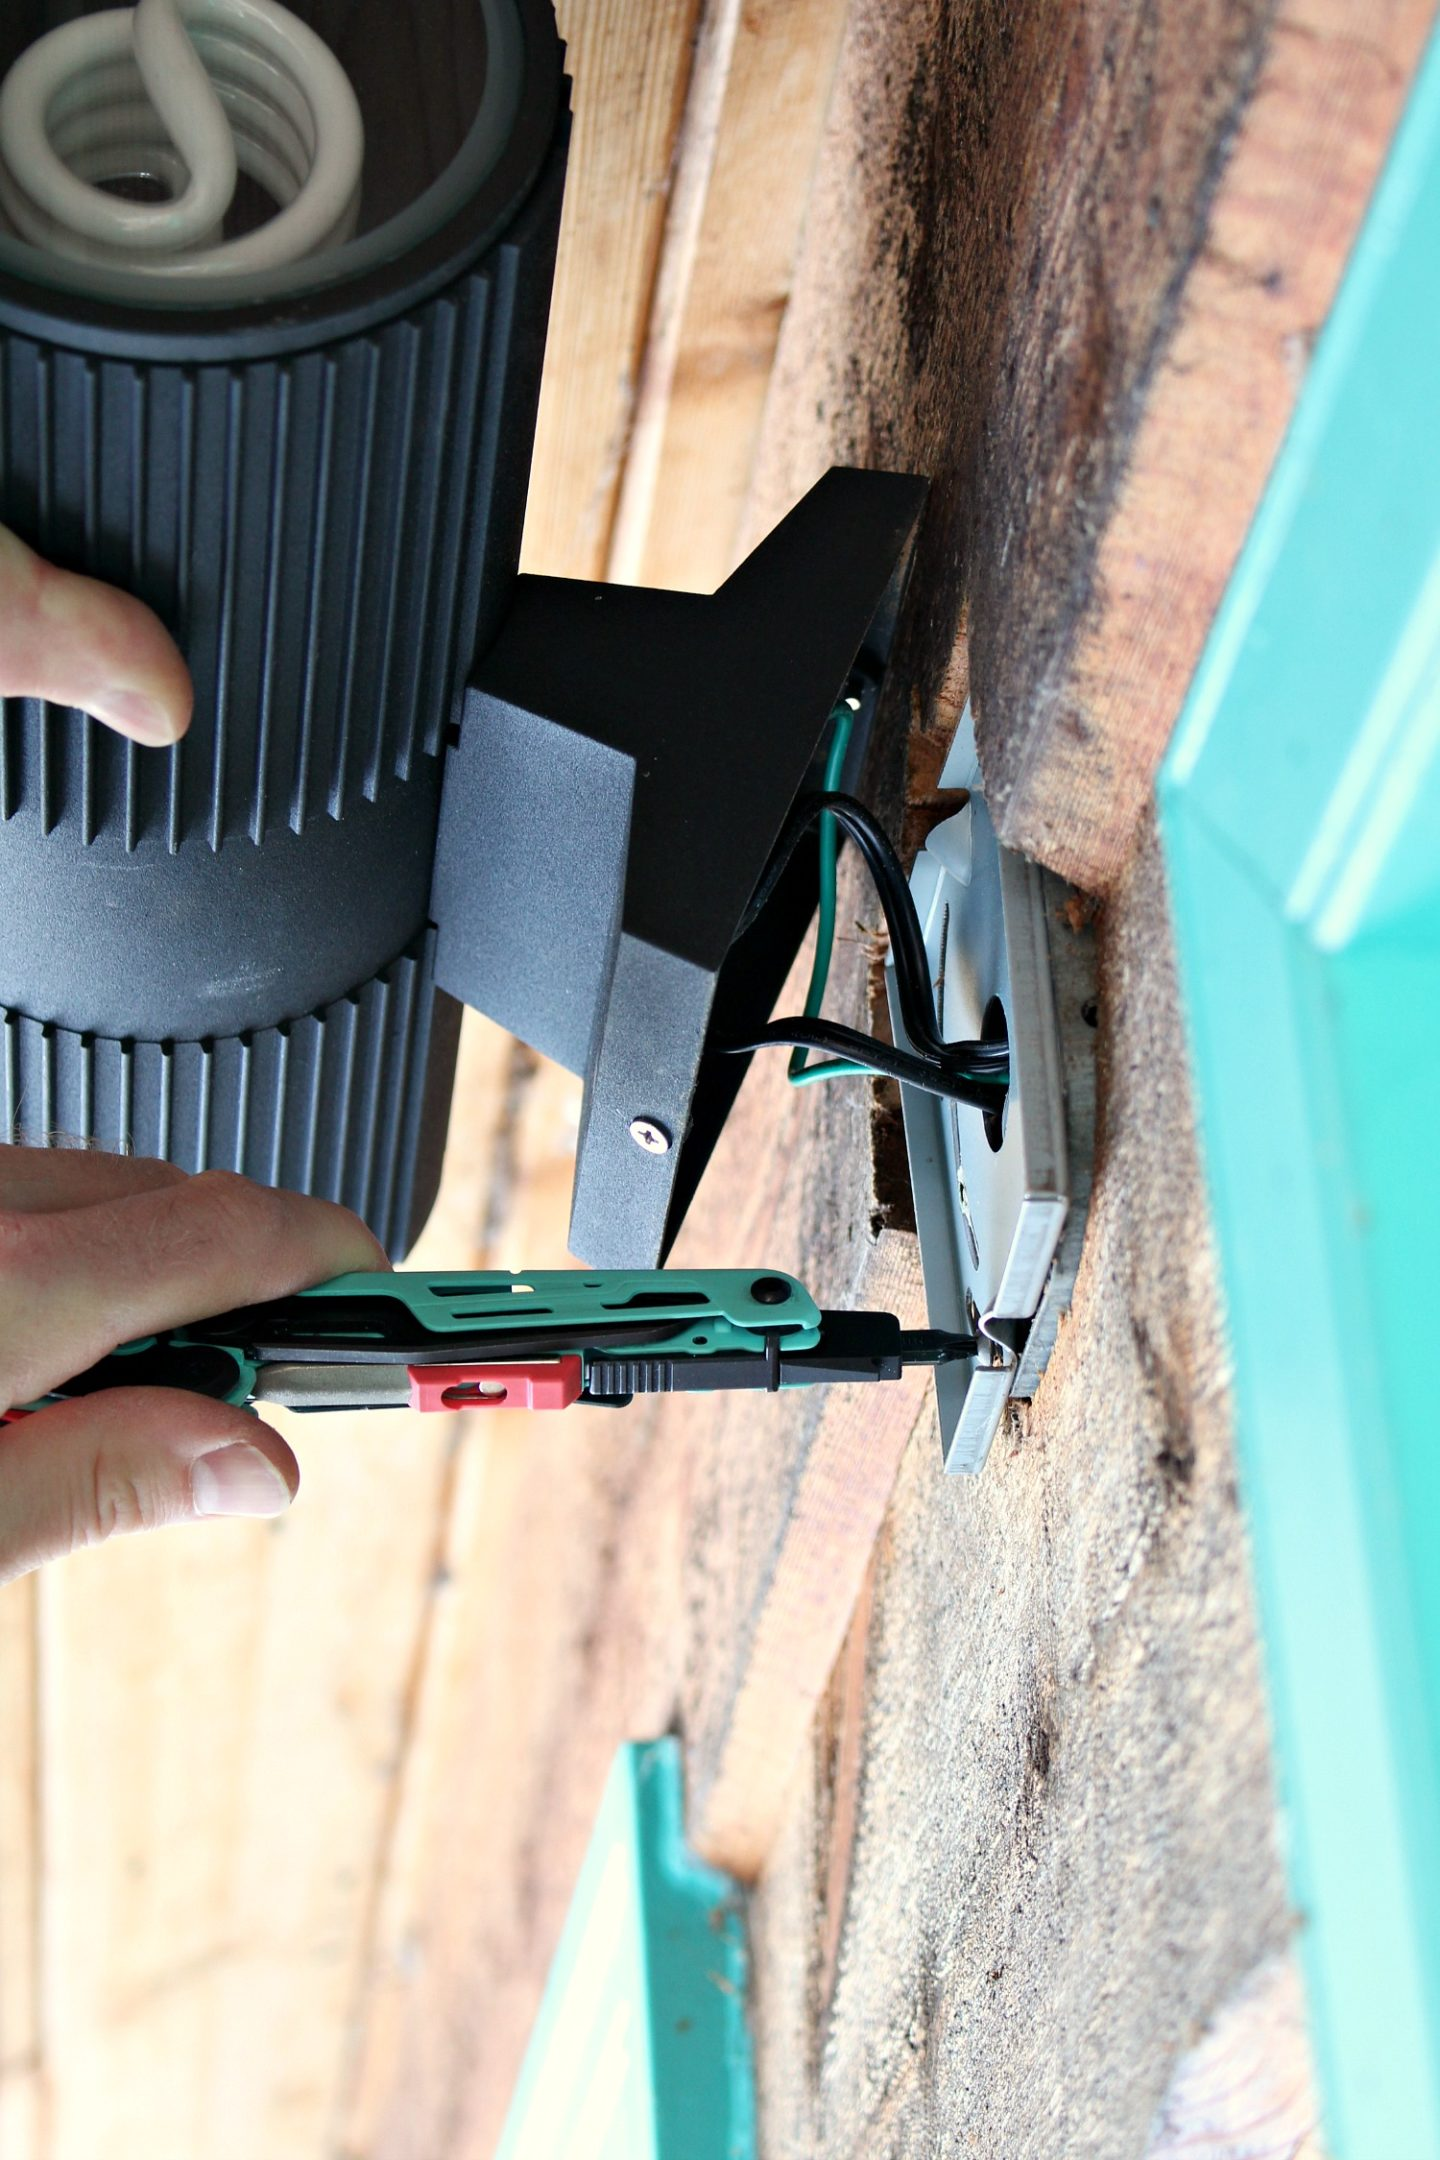 Can You Use a Multi Tool for Home Repairs - YES!